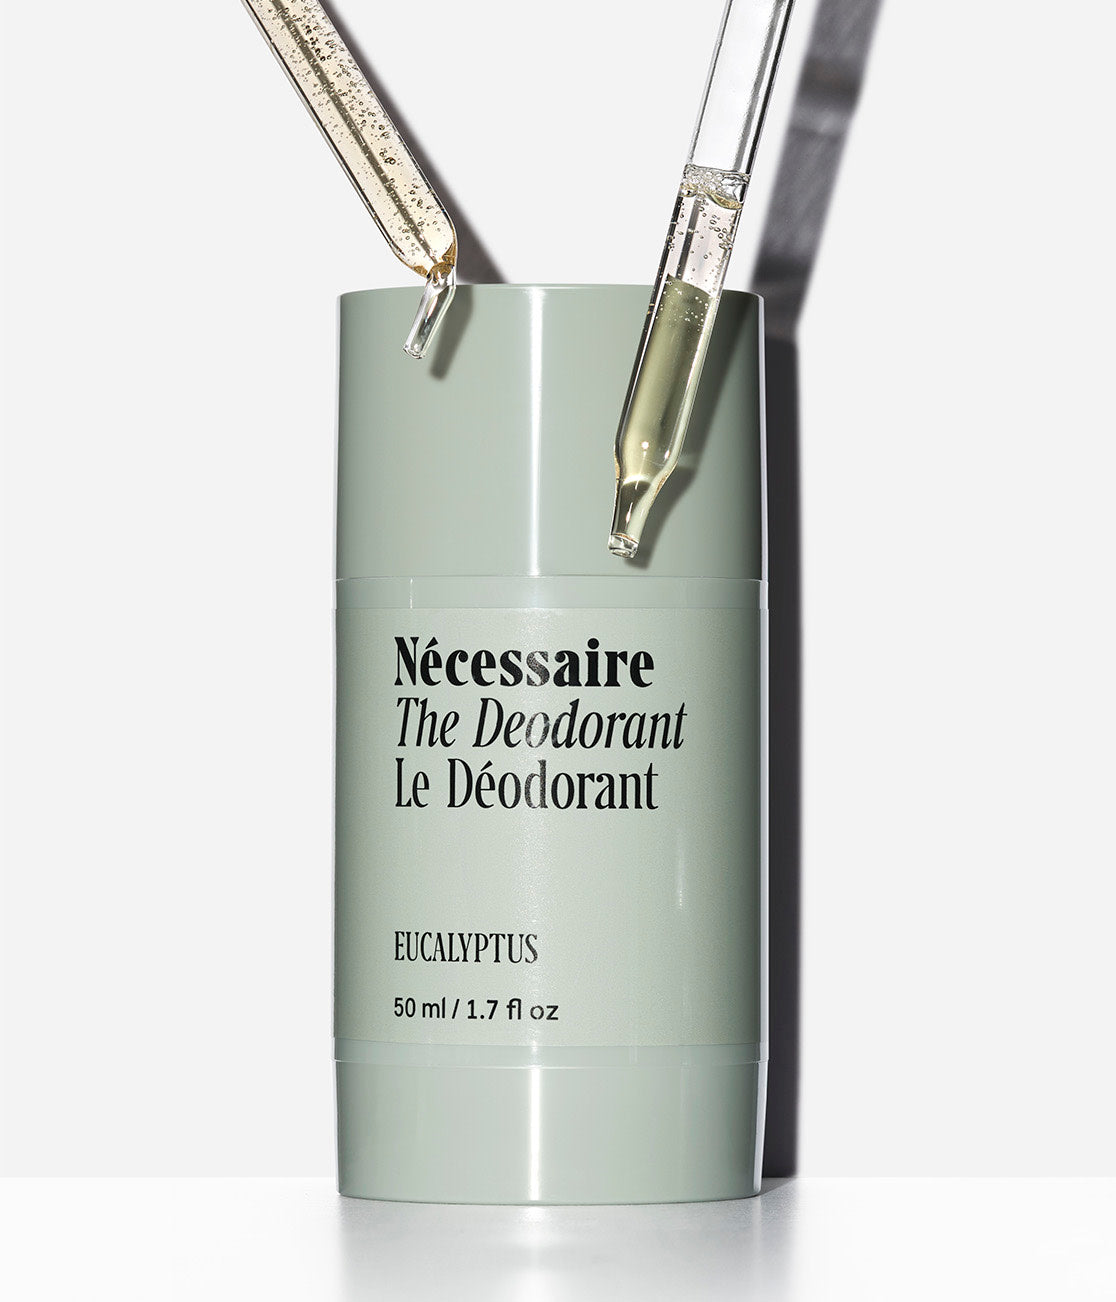 Nécessaire The Deodorant (Eucalyptus). Worldwide Free Shipping - Singapore, Malaysia, Brunei, Philippines, Indonesia, India, Australia, Hong Kong, USA, UAE, Europe!